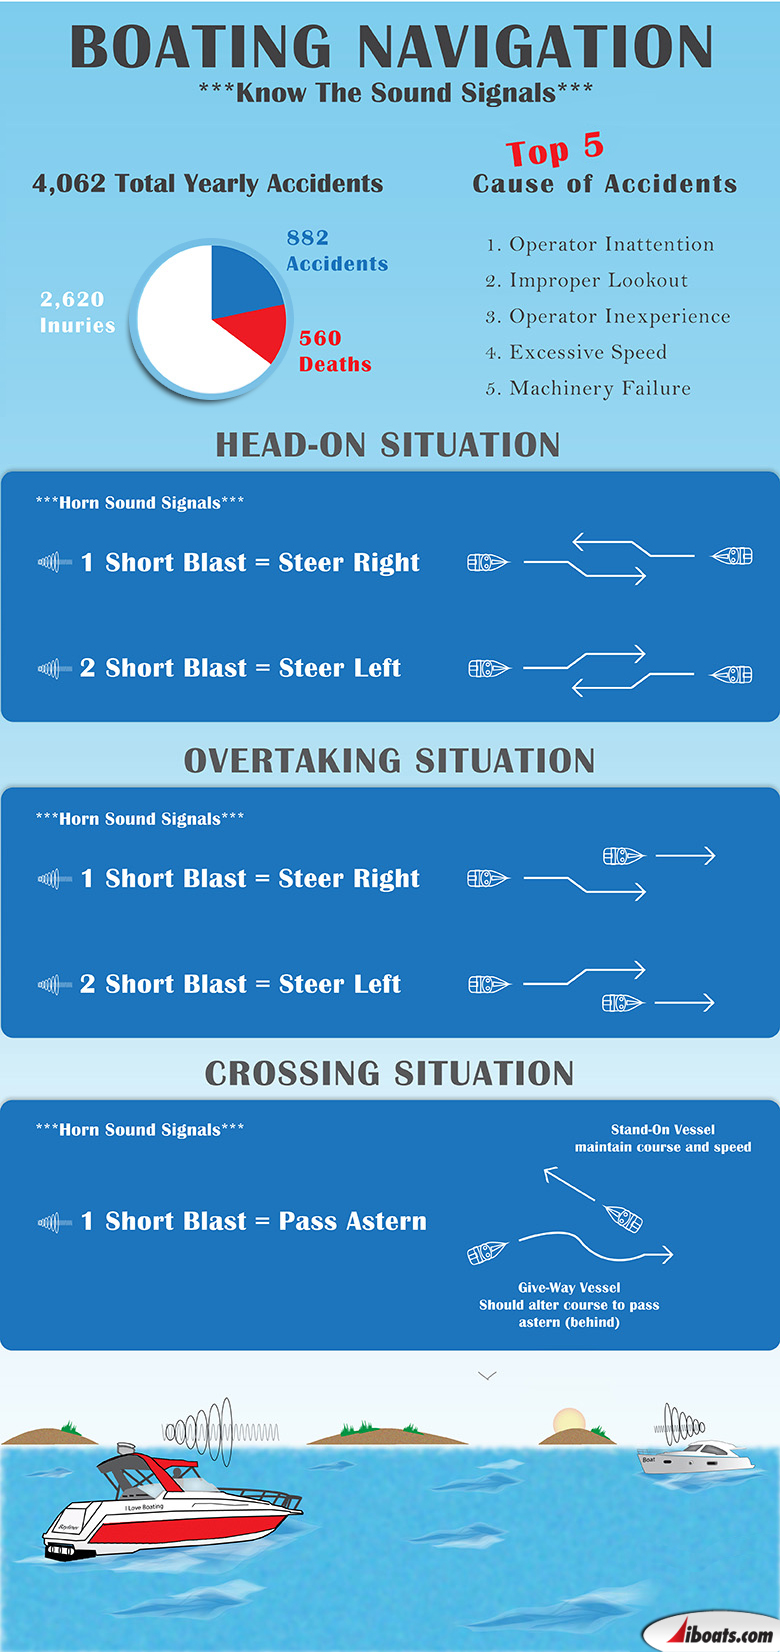 Infographic on boating navigation and horn sound communication